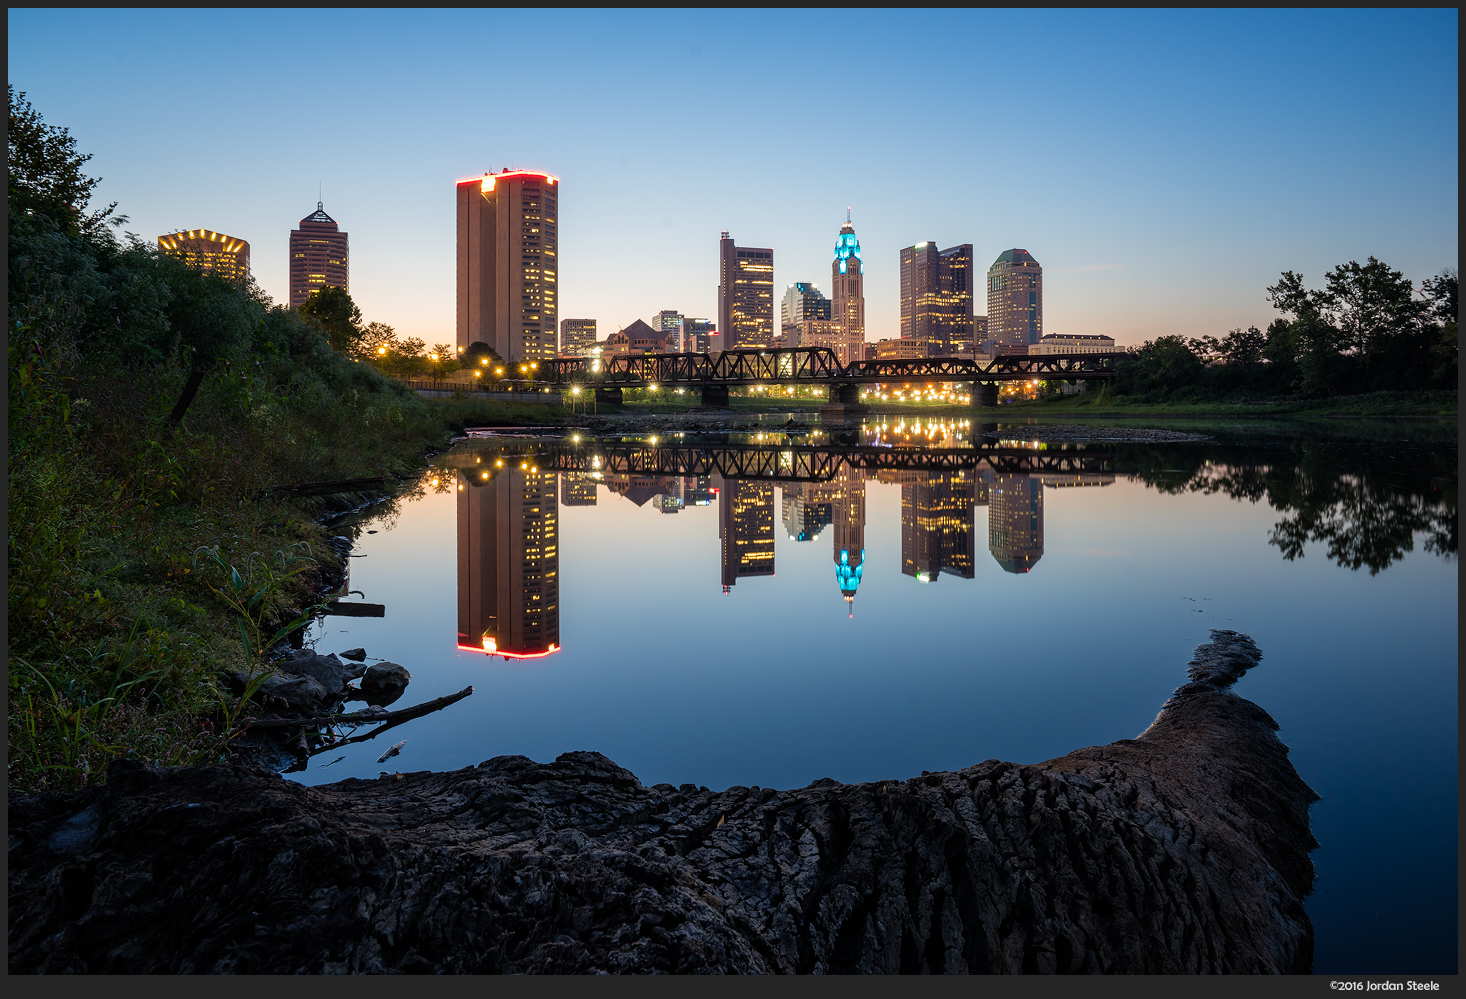 Calm Columbus Morning - Sony A7 II with Zeiss FE 16-35mm f/4 ZA OSS